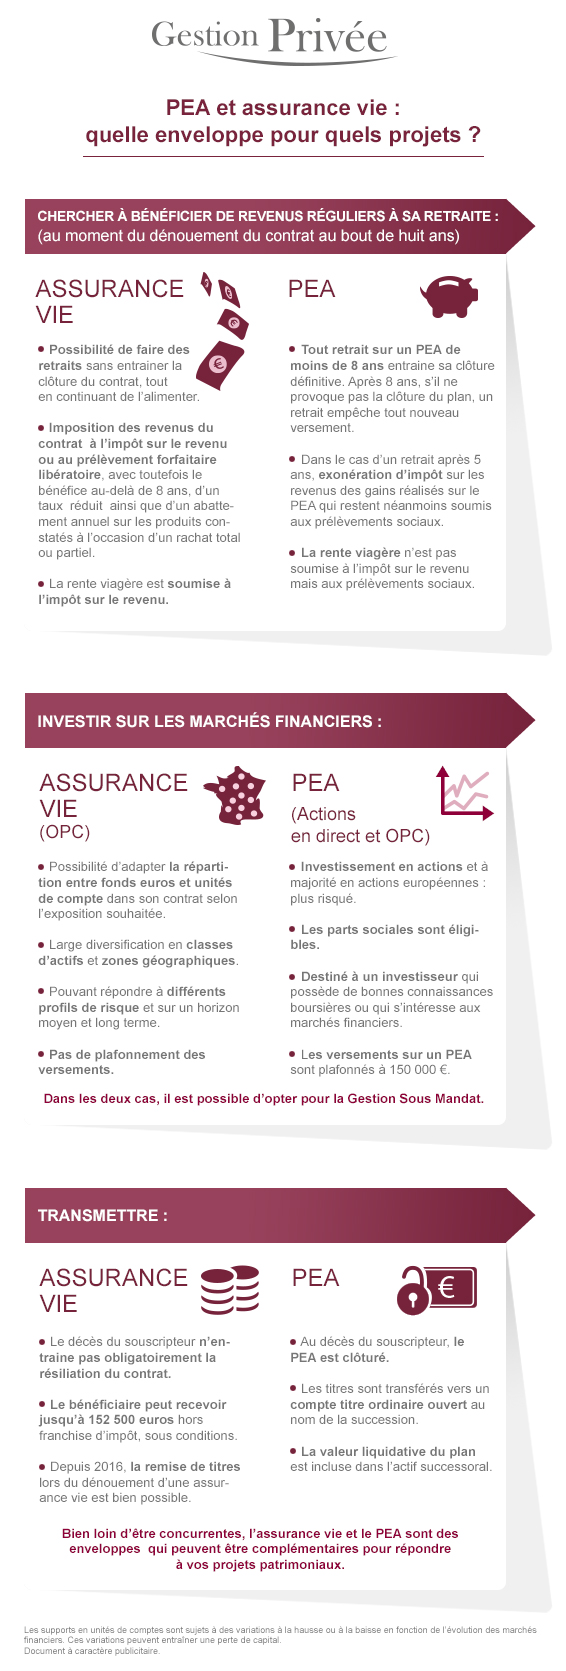 infographie pea assurance vie gestion priv e caisse d epargne. Black Bedroom Furniture Sets. Home Design Ideas